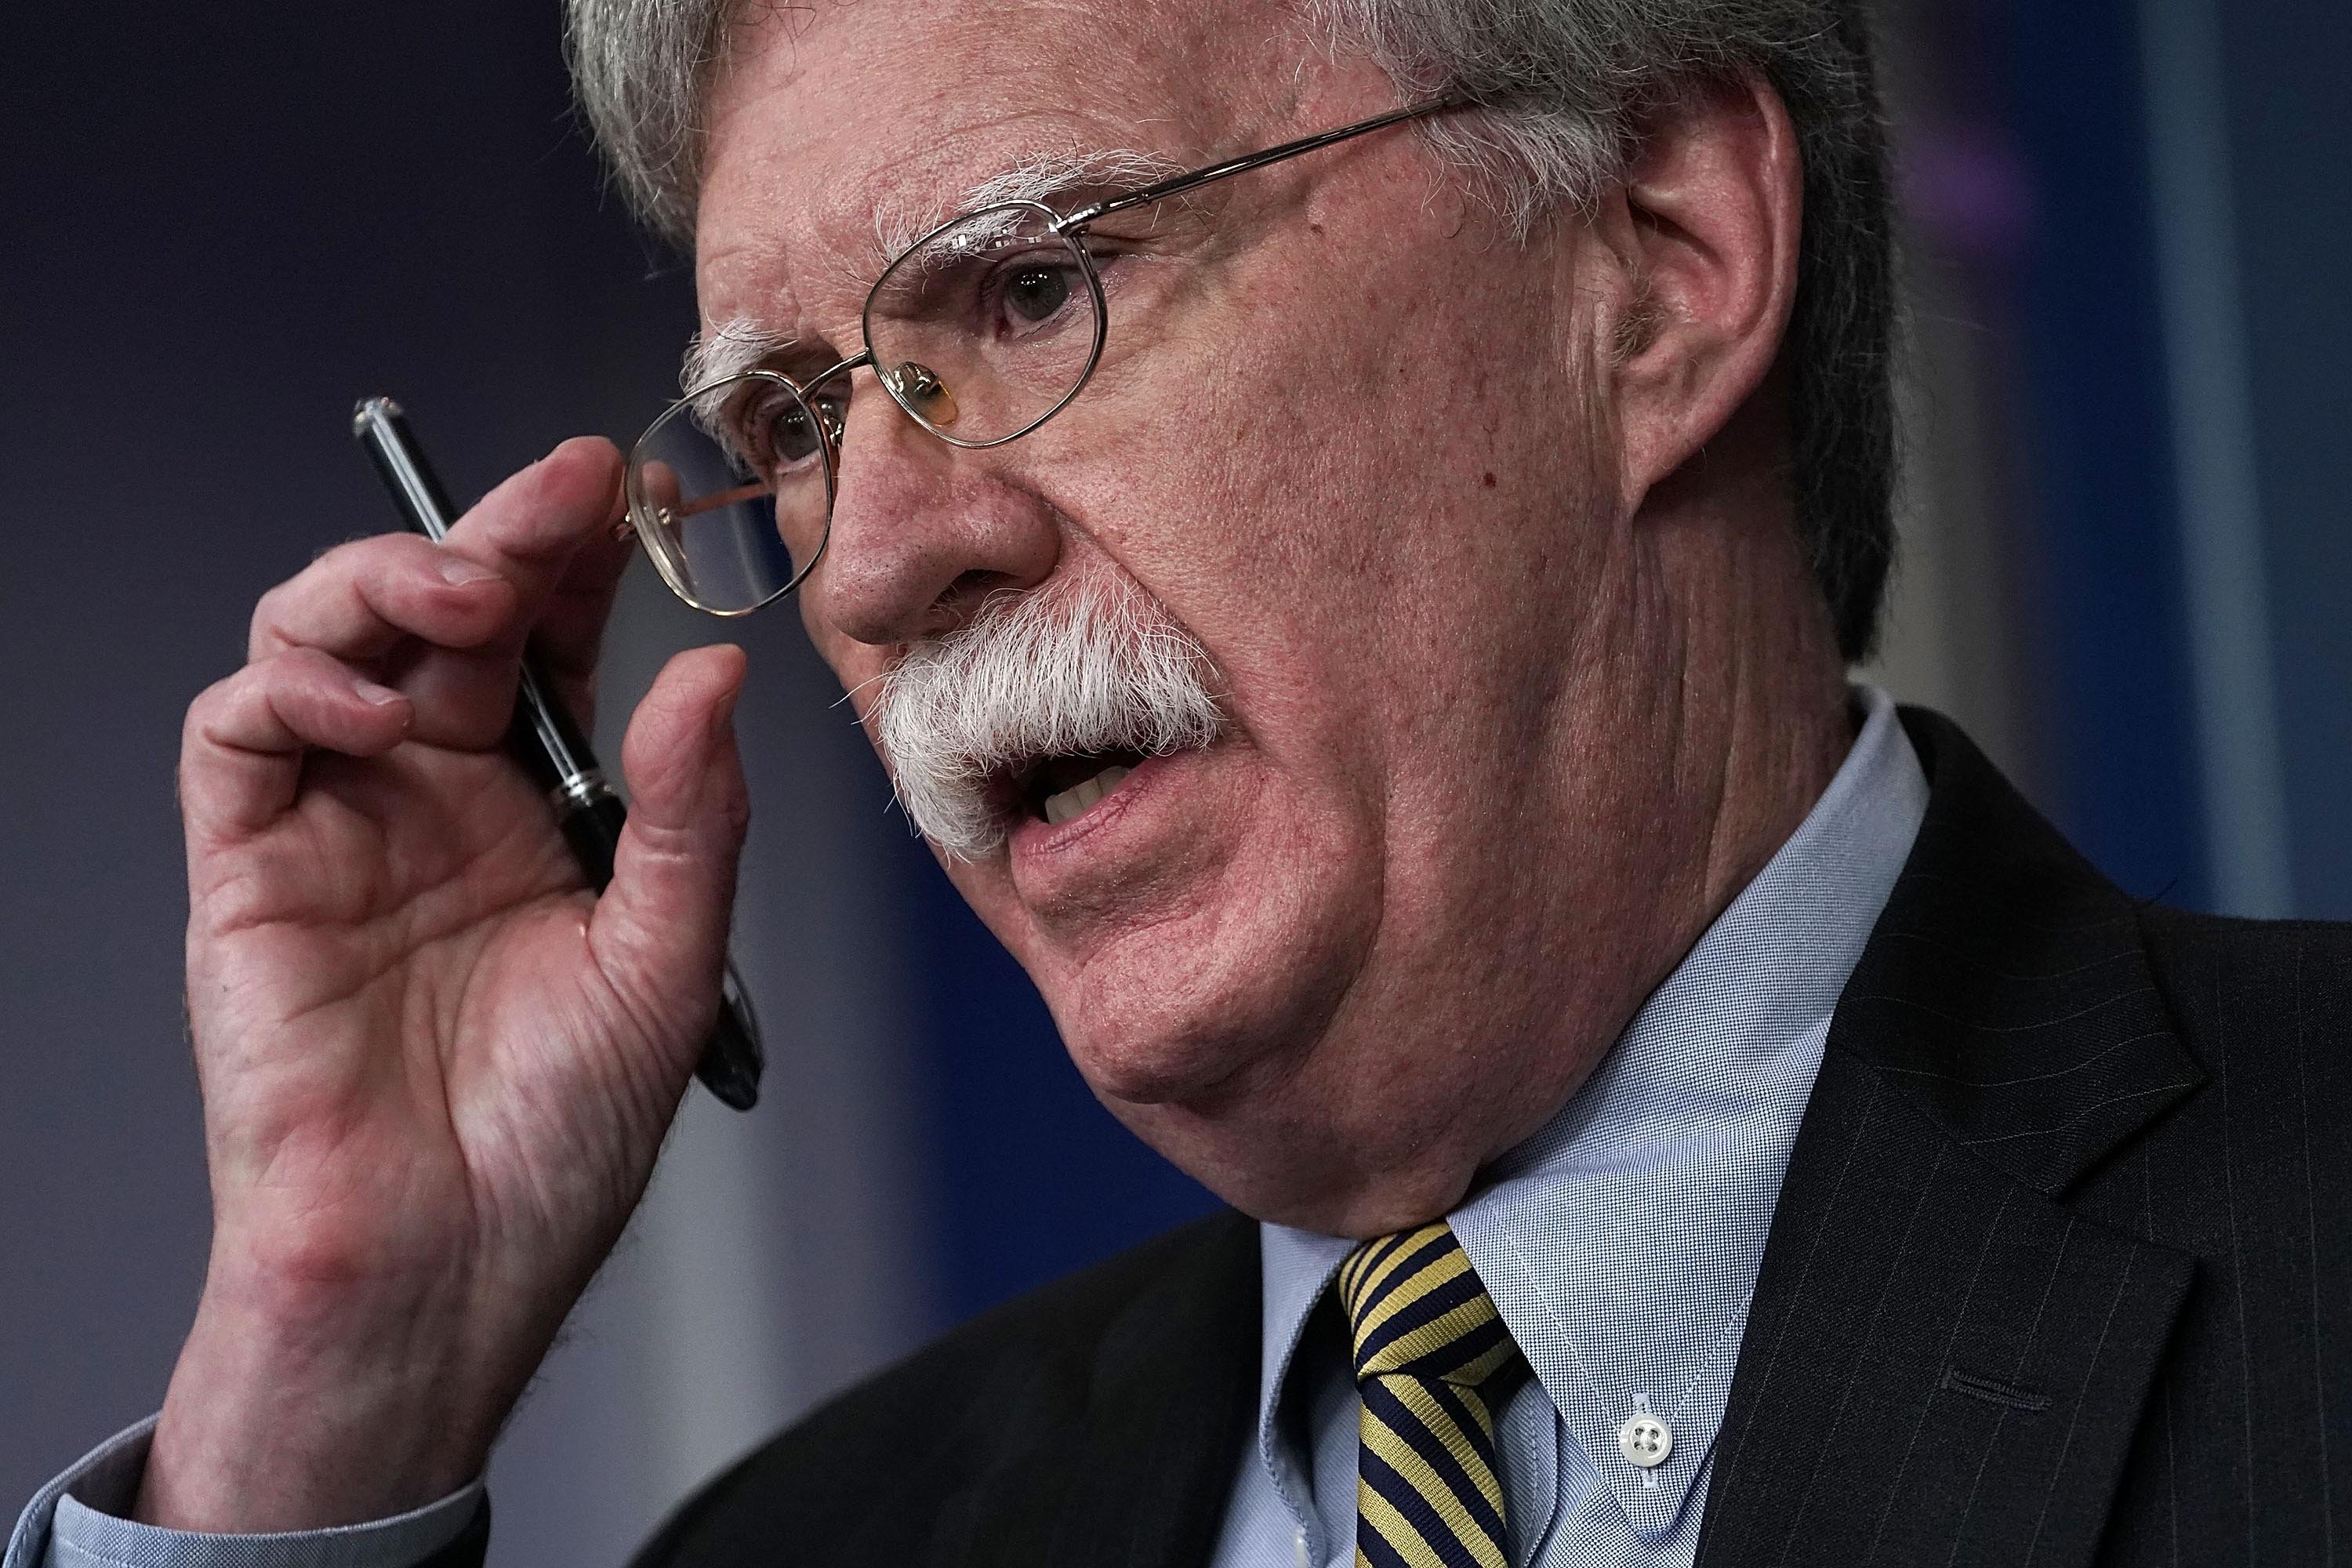 Bolton reemerges after public hiatus charging White House froze his Twitter account